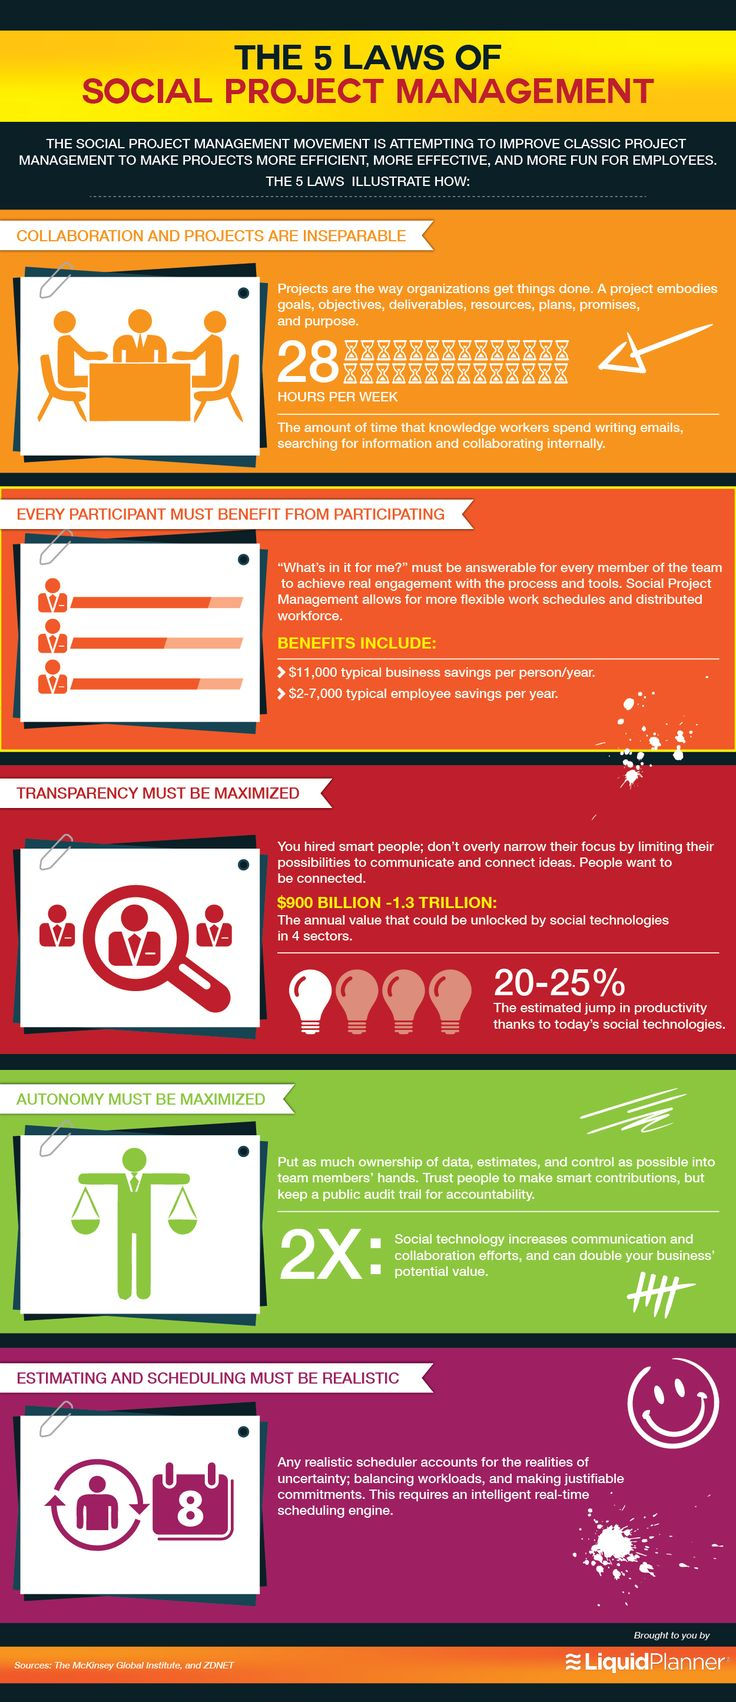 Social project management is on the rise - Check out our infographic on the 5 laws to successful social project management. #pm